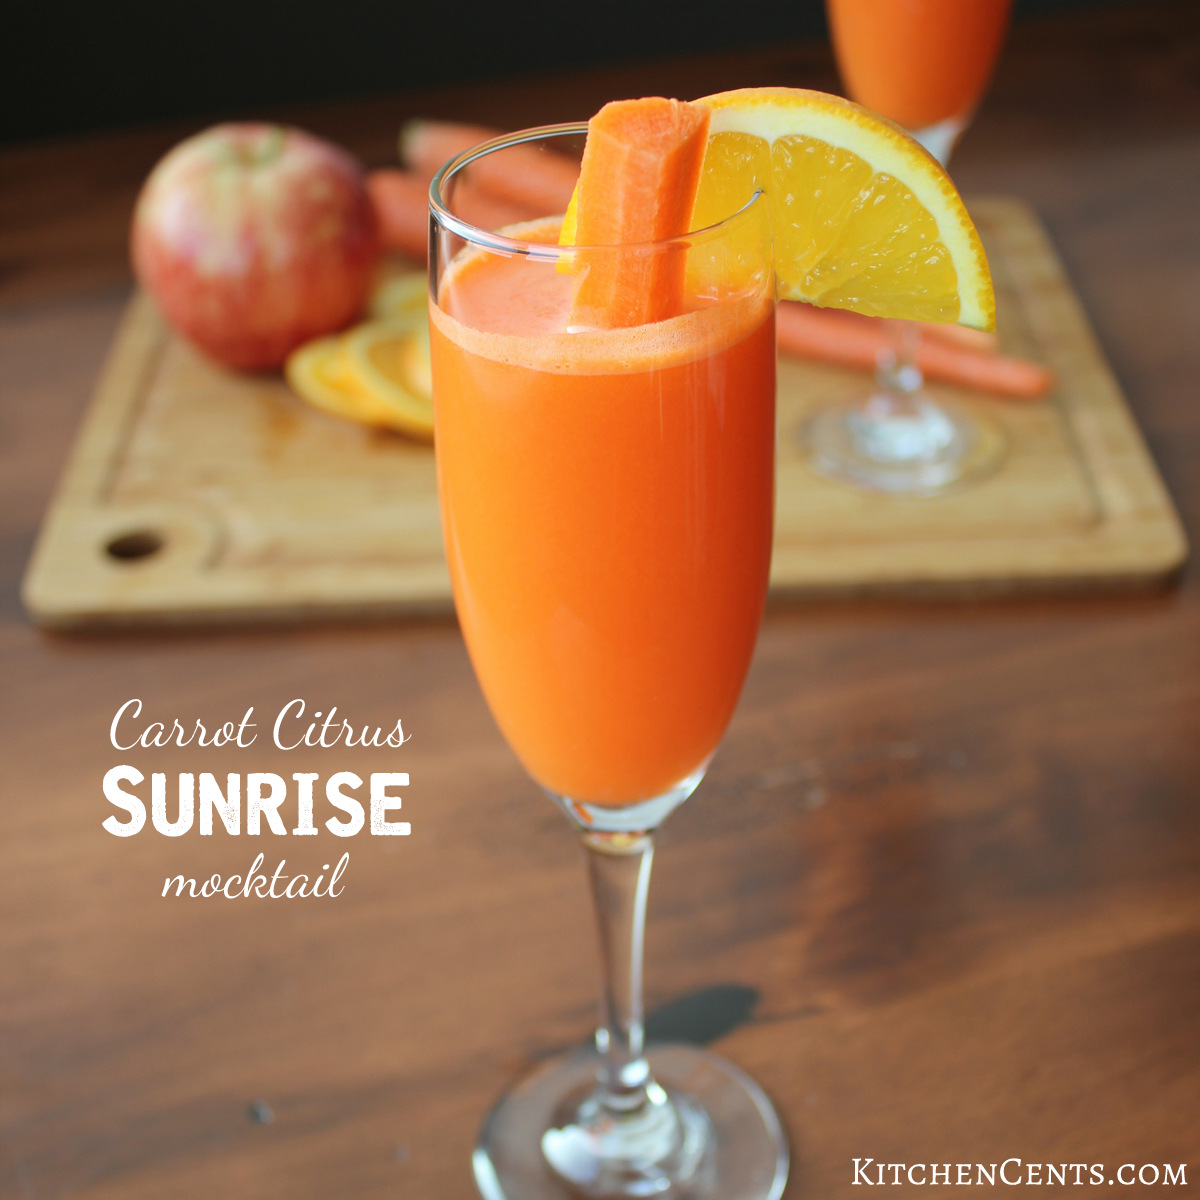 Carrot Citrus Sunrise Mocktail